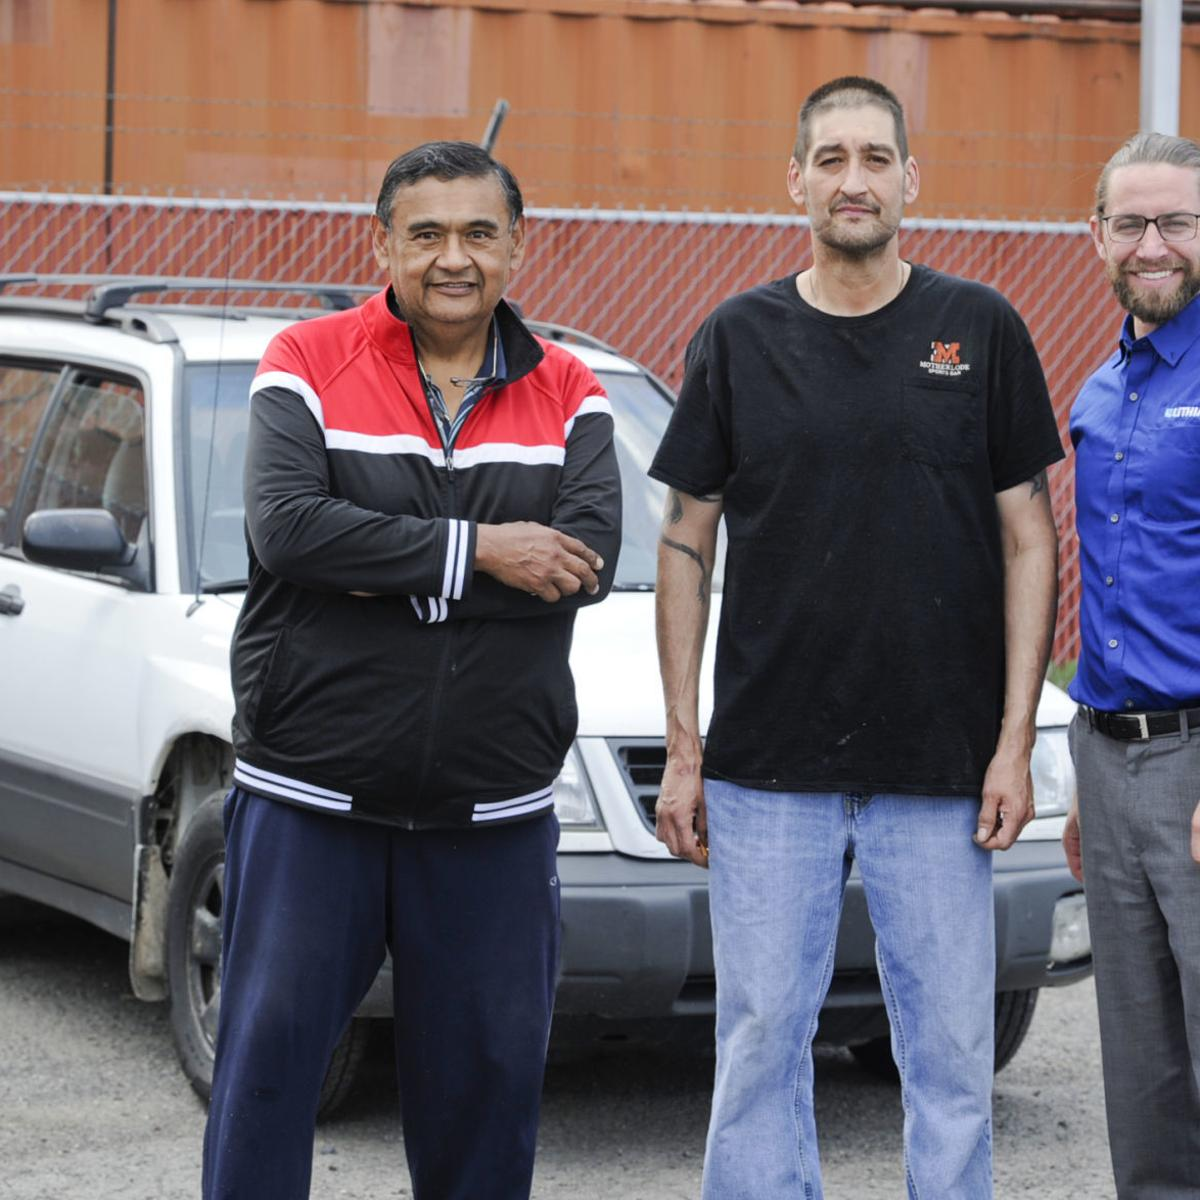 Helena Restaurant Owner Buys Employee A Car To Make It To